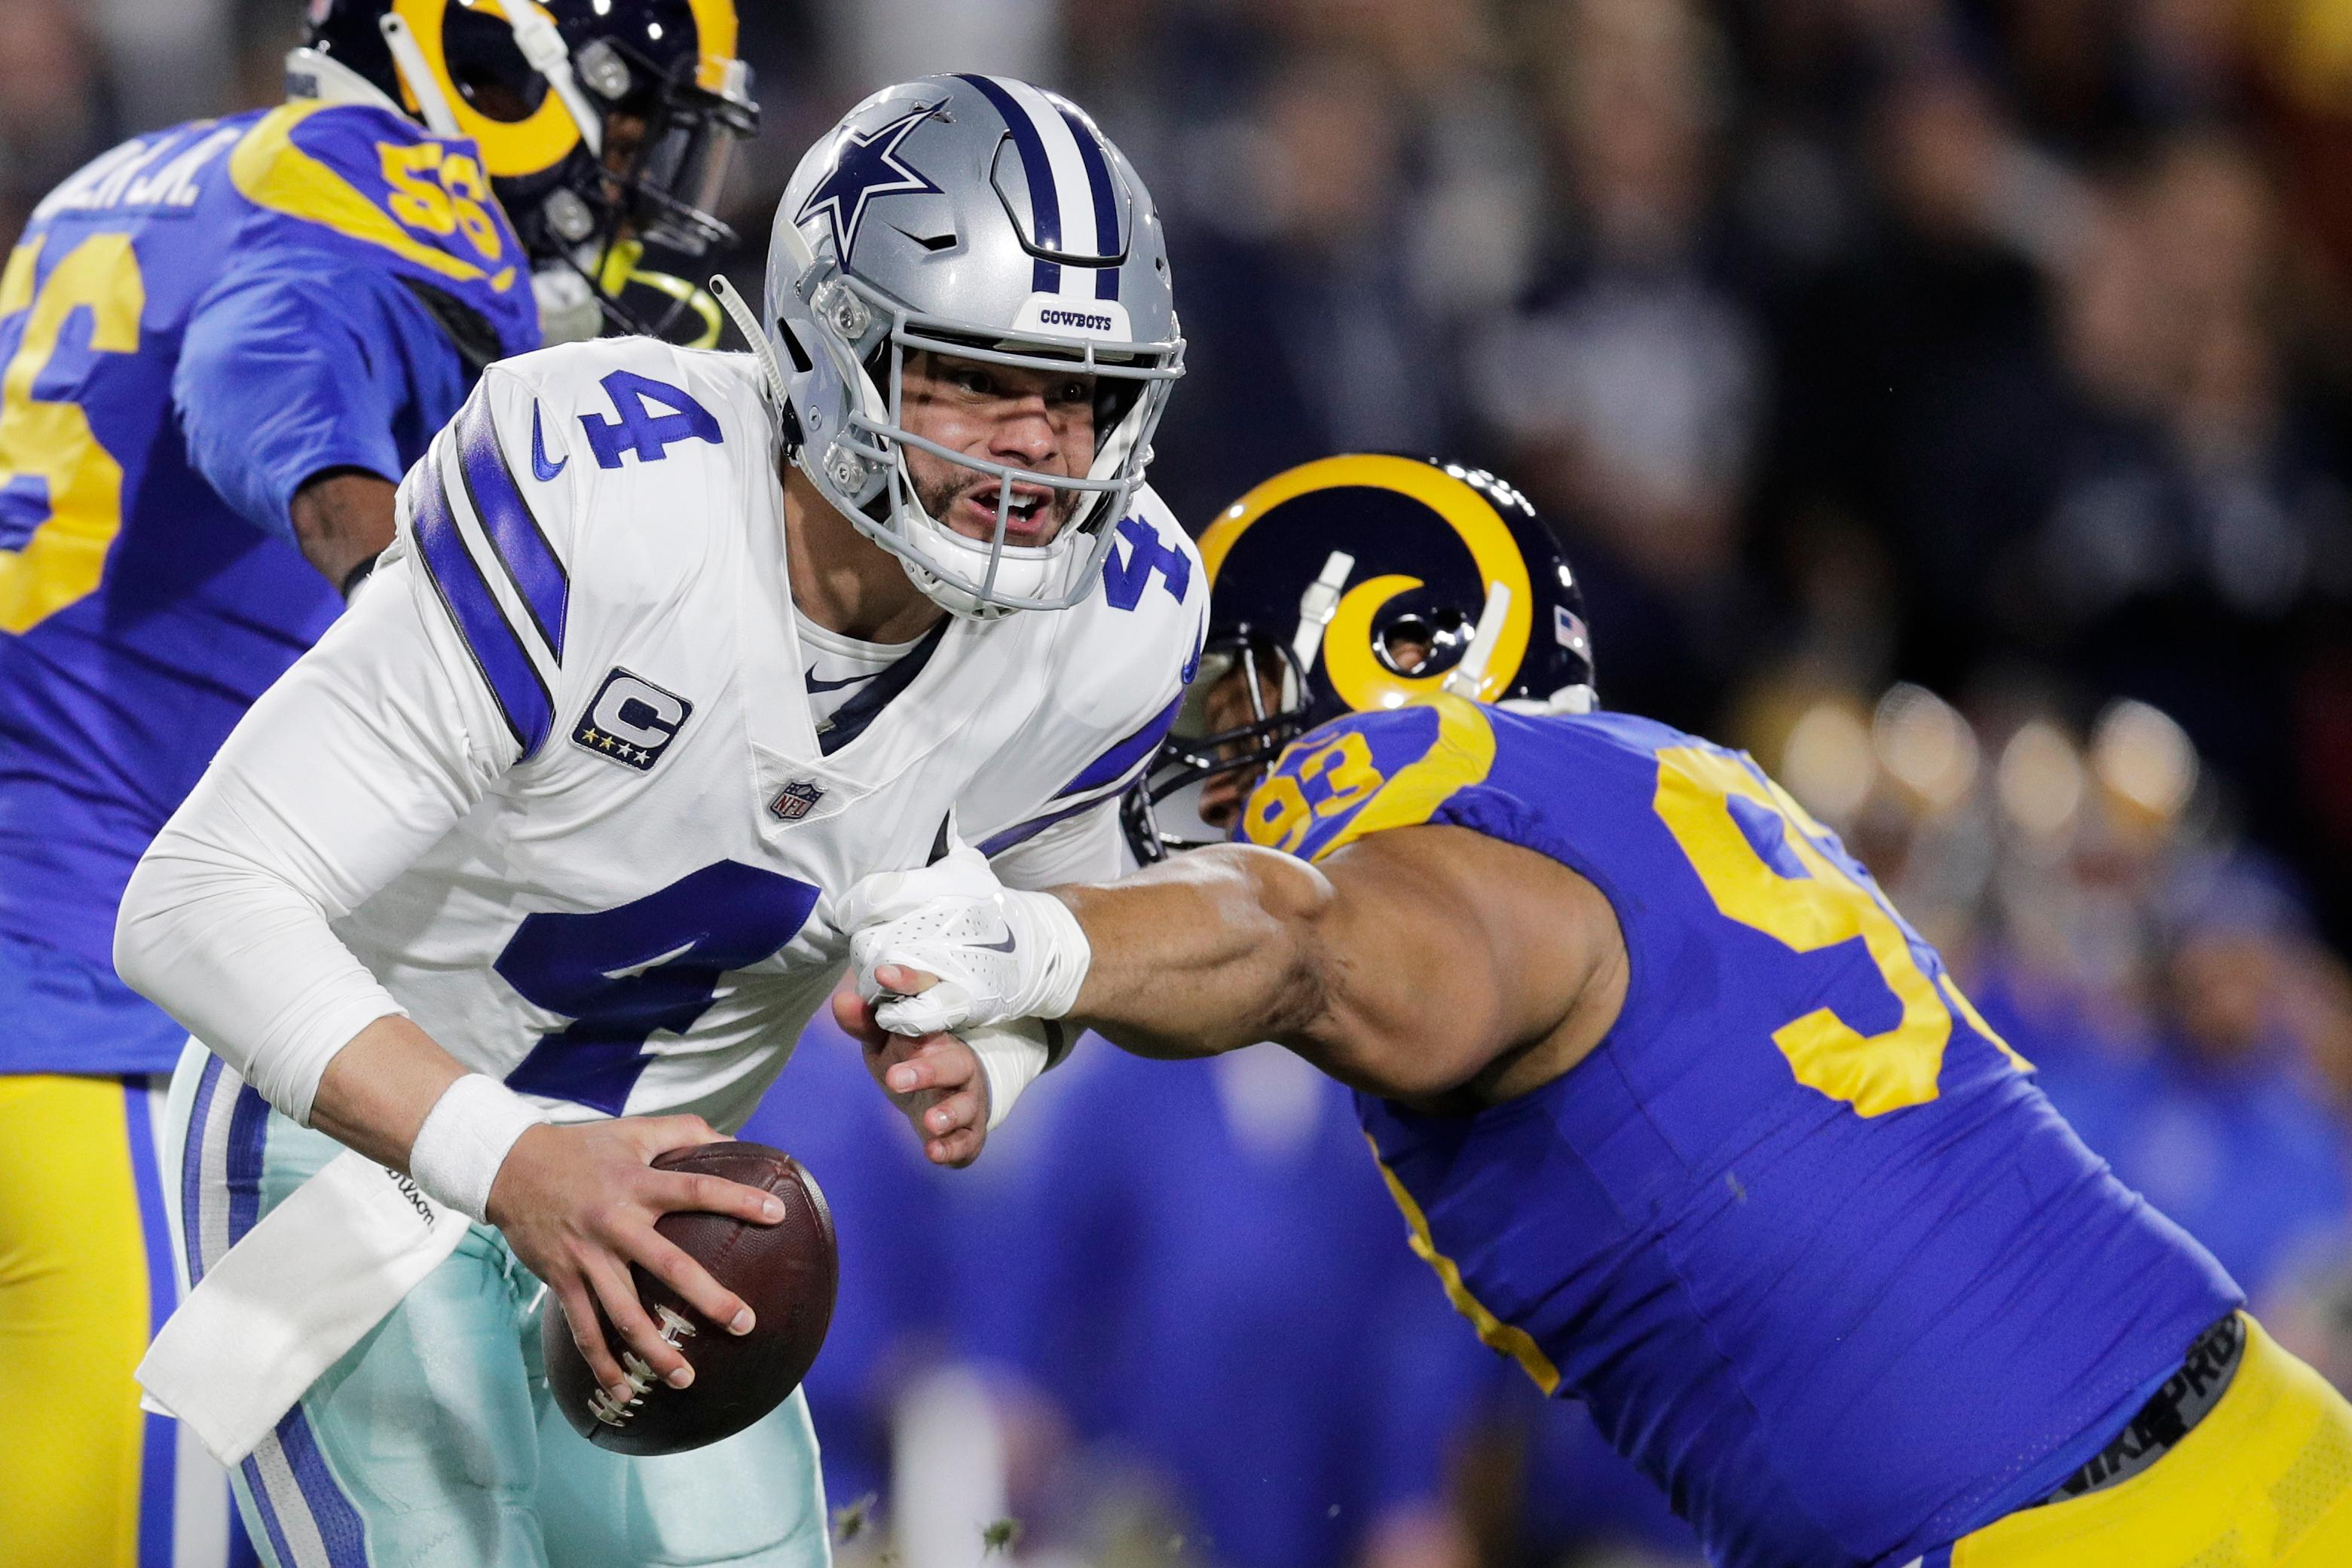 Dallas Cowboys quarterback Dak Prescott breaks away from Los Angeles Rams nose tackle Ndamukong Suh during the first half in an NFL divisional football playoff game Saturday, Jan. 12, 2019, in Los Angeles. (AP Photo/Jae C. Hong)